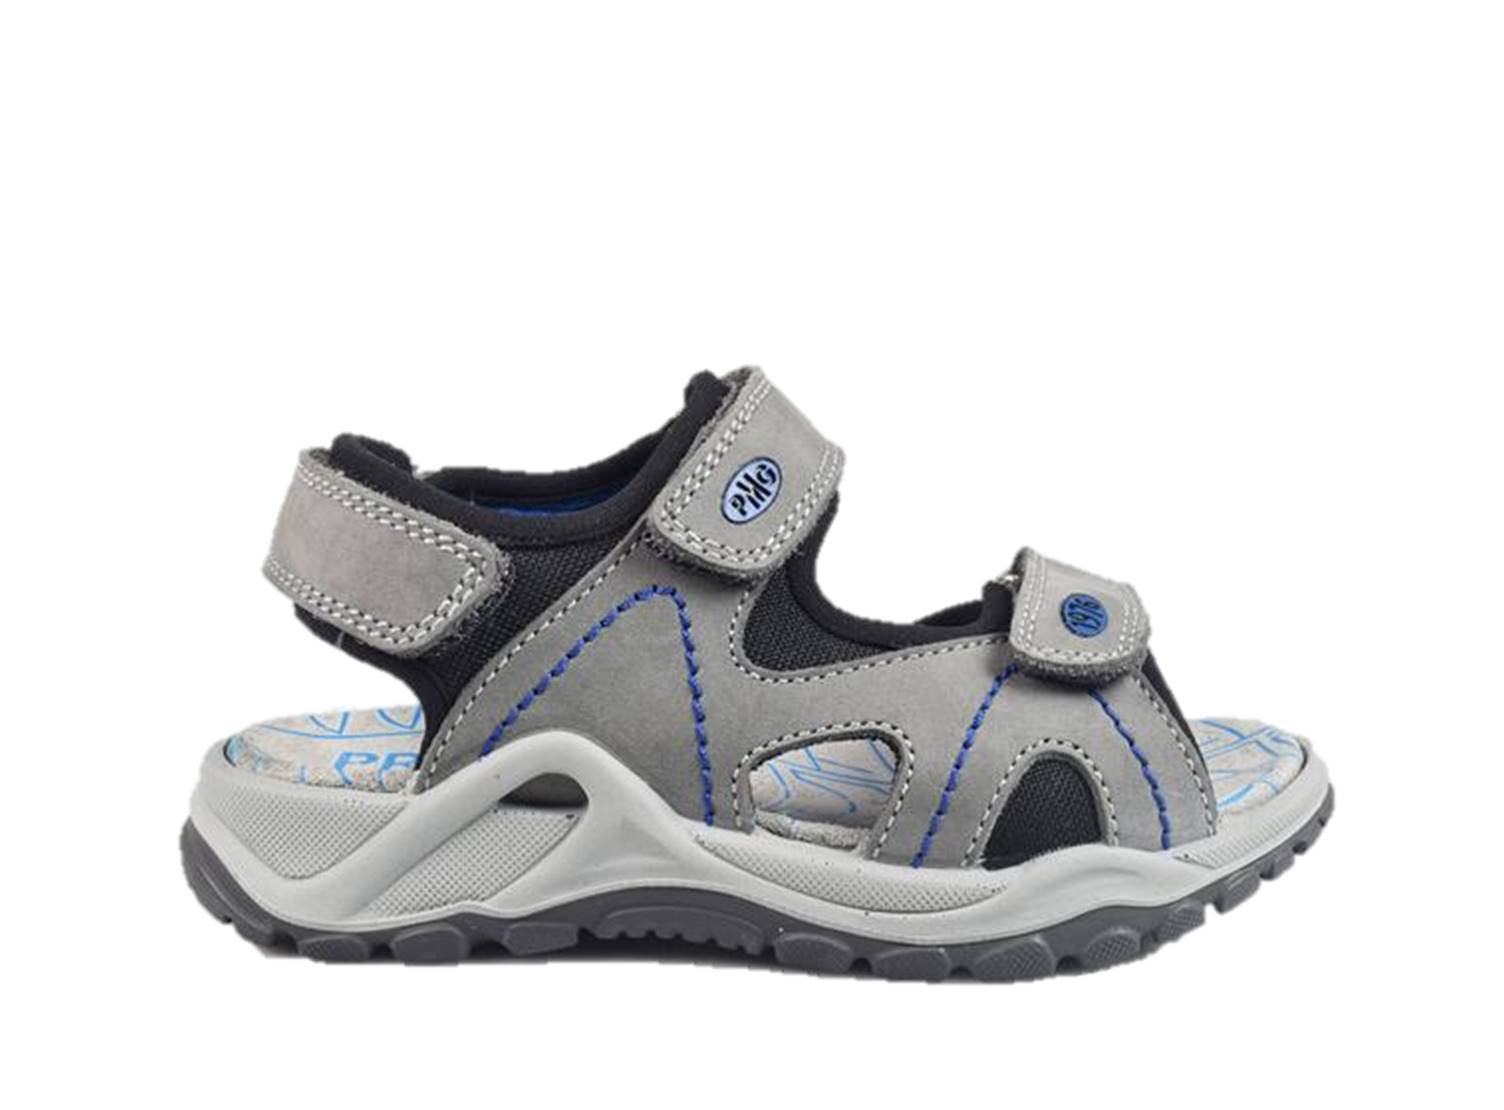 Primigi 3397400 Sandals Child Shoes Gray Leather Tear Made in Italy